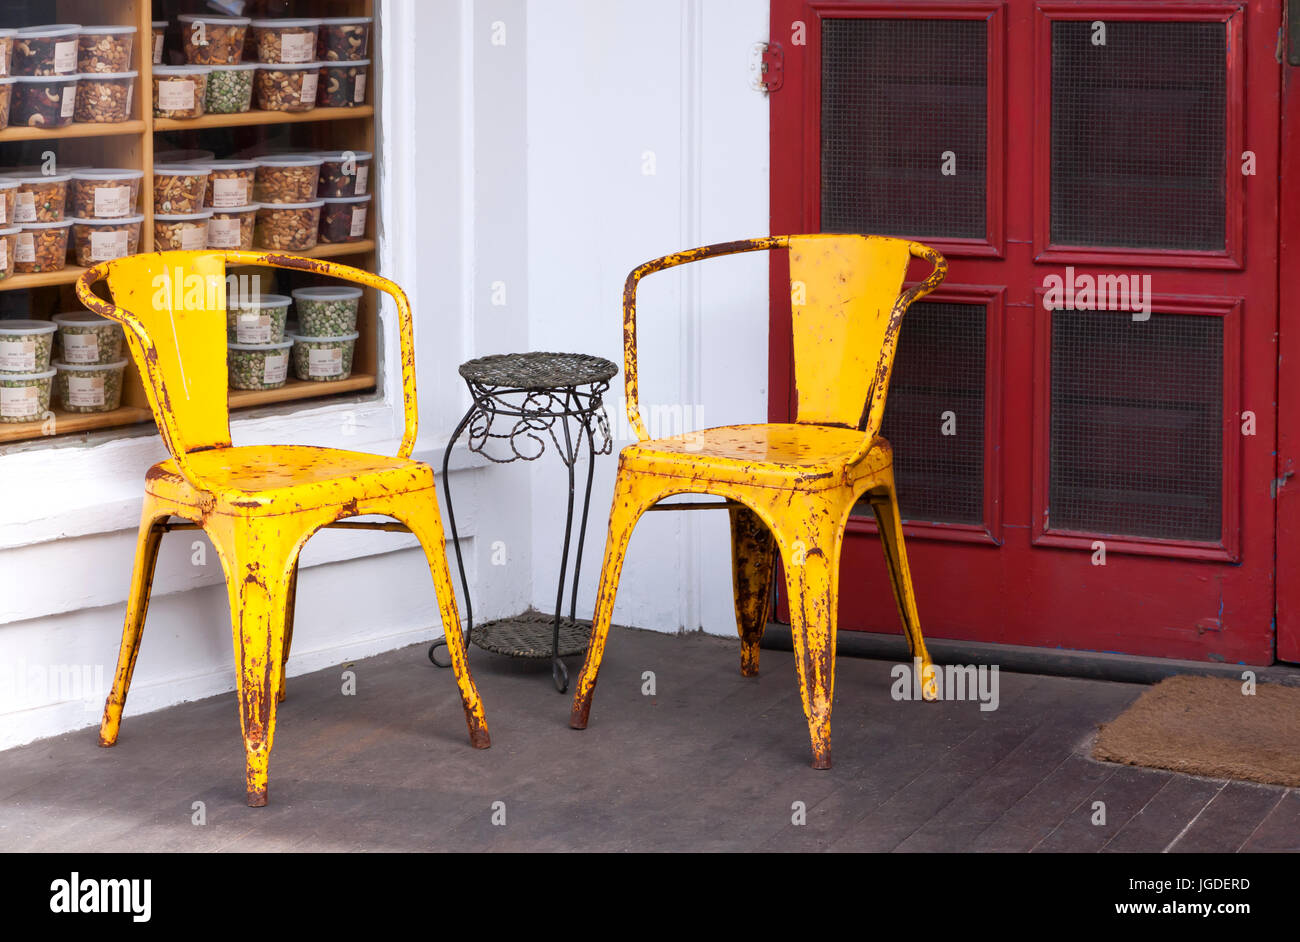 Two colorful yellow weathered metal chairs on a porch set against a red door. Stock Photo